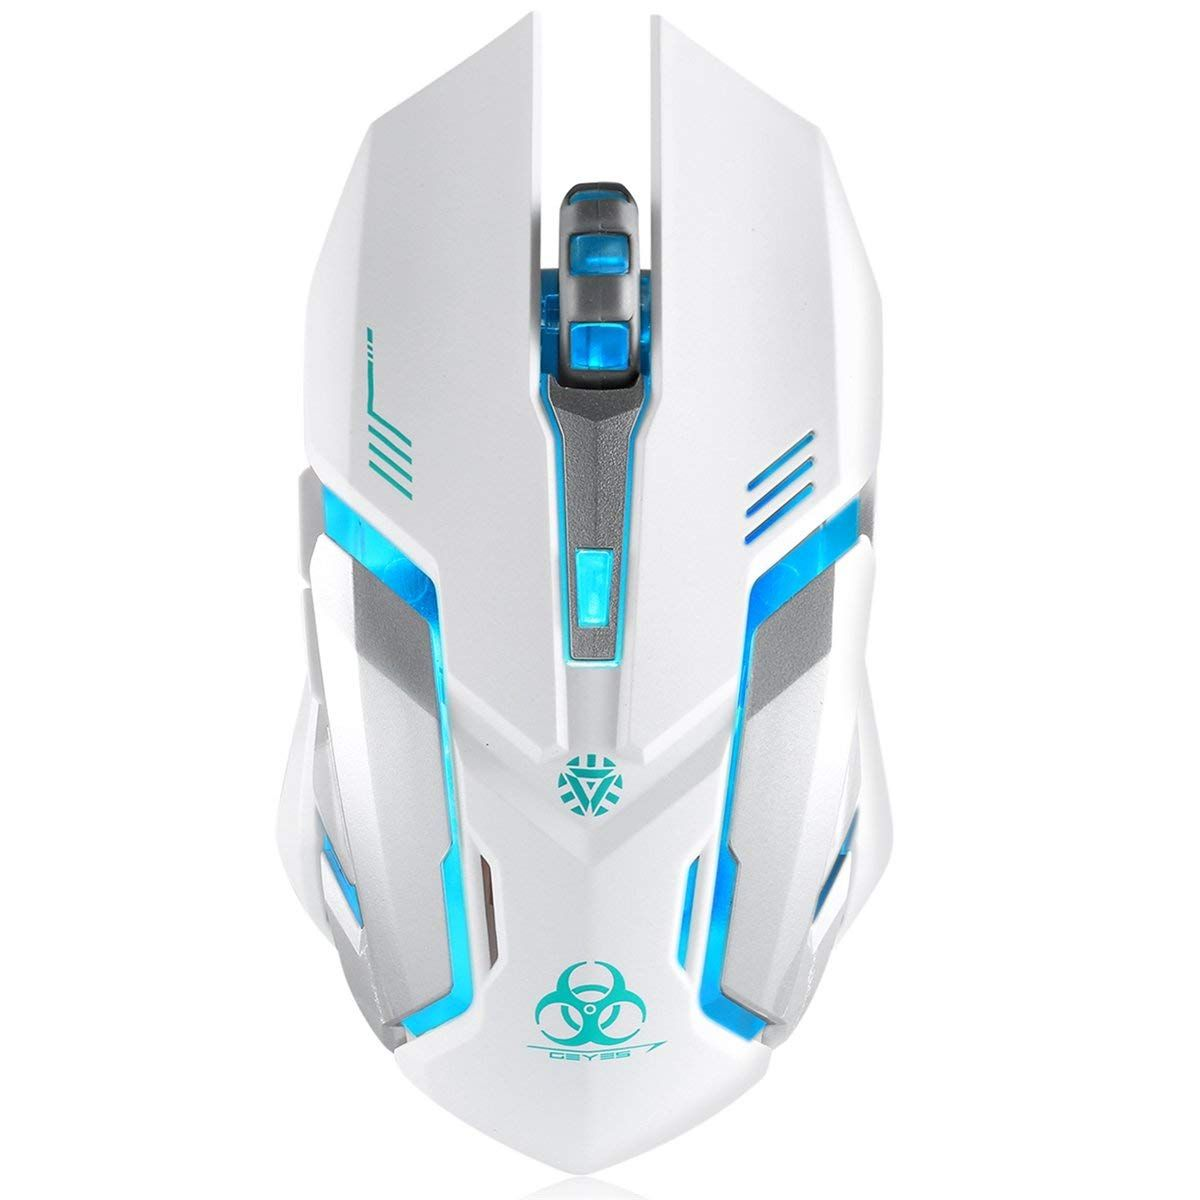 cd33013ca34 Wireless Gaming Mouse, VEGCOO C8 Silent Click Wireless Rechargeable Mouse  with Colorful LED Lights and 2400/1600/1000 DPI 400mah Lithium Battery for  Laptop ...